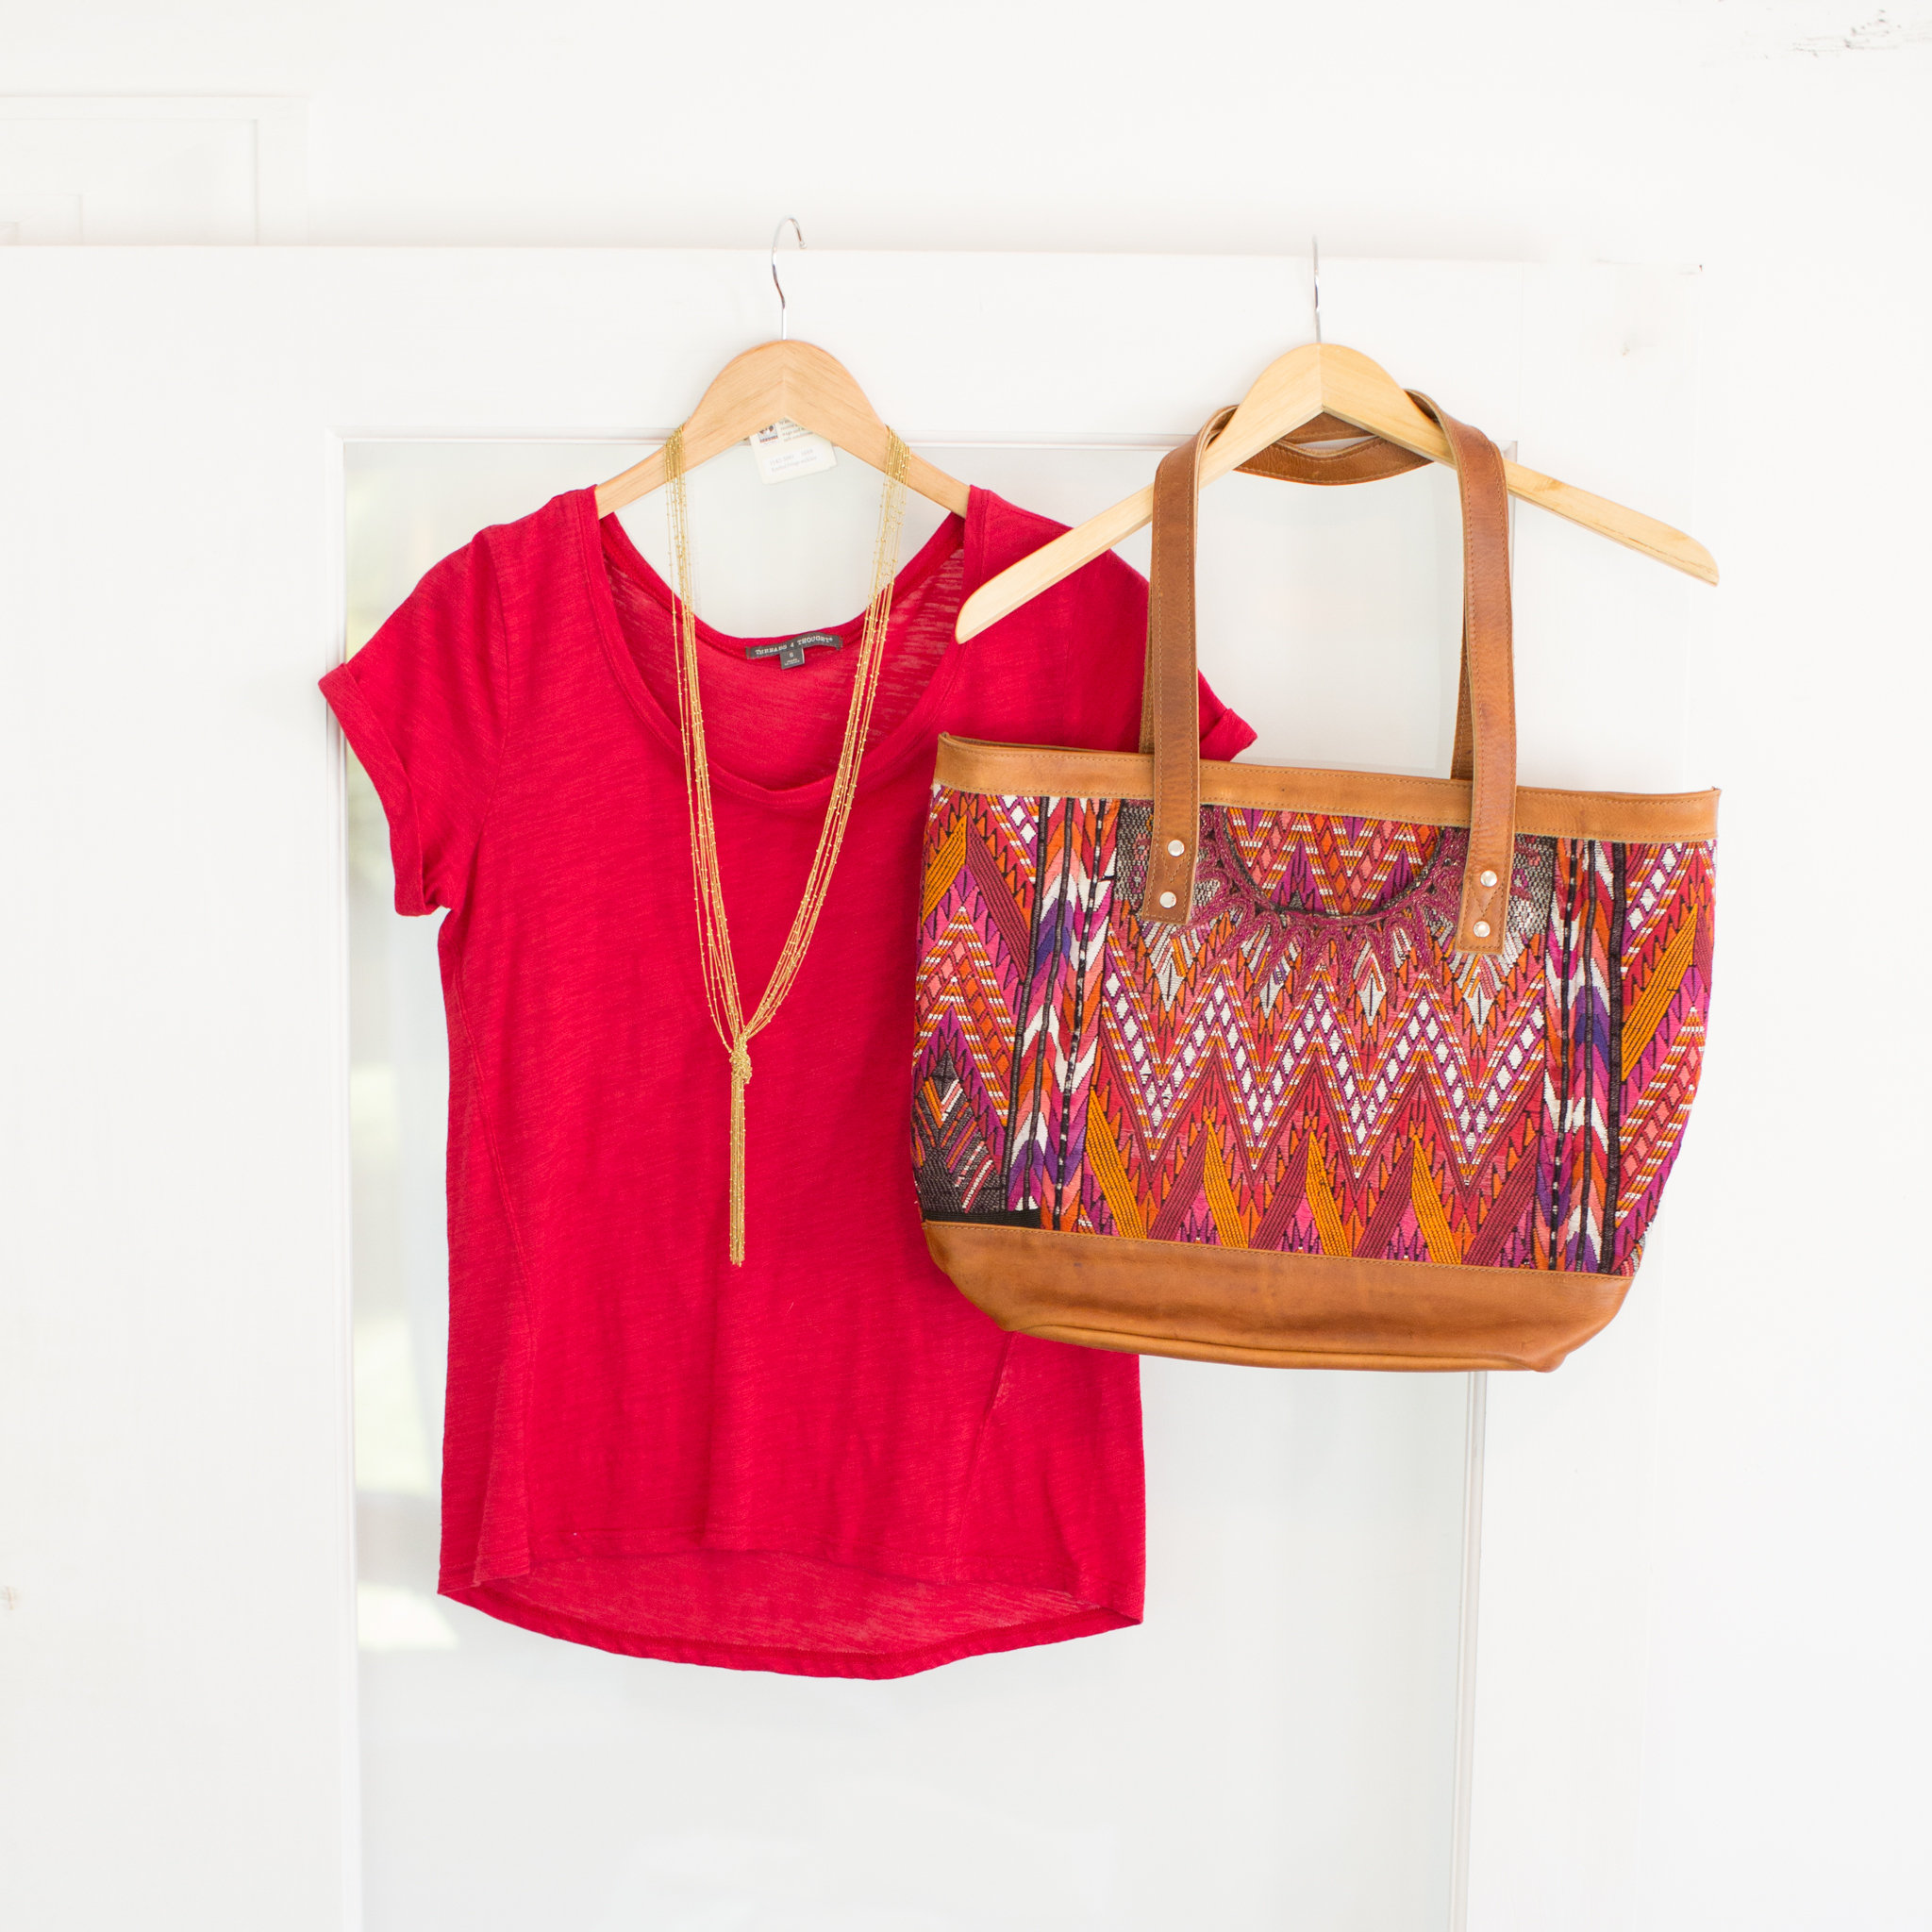 View More: http://em-grey.pass.us/molly-and-carly-giveaway-the-flourish-market